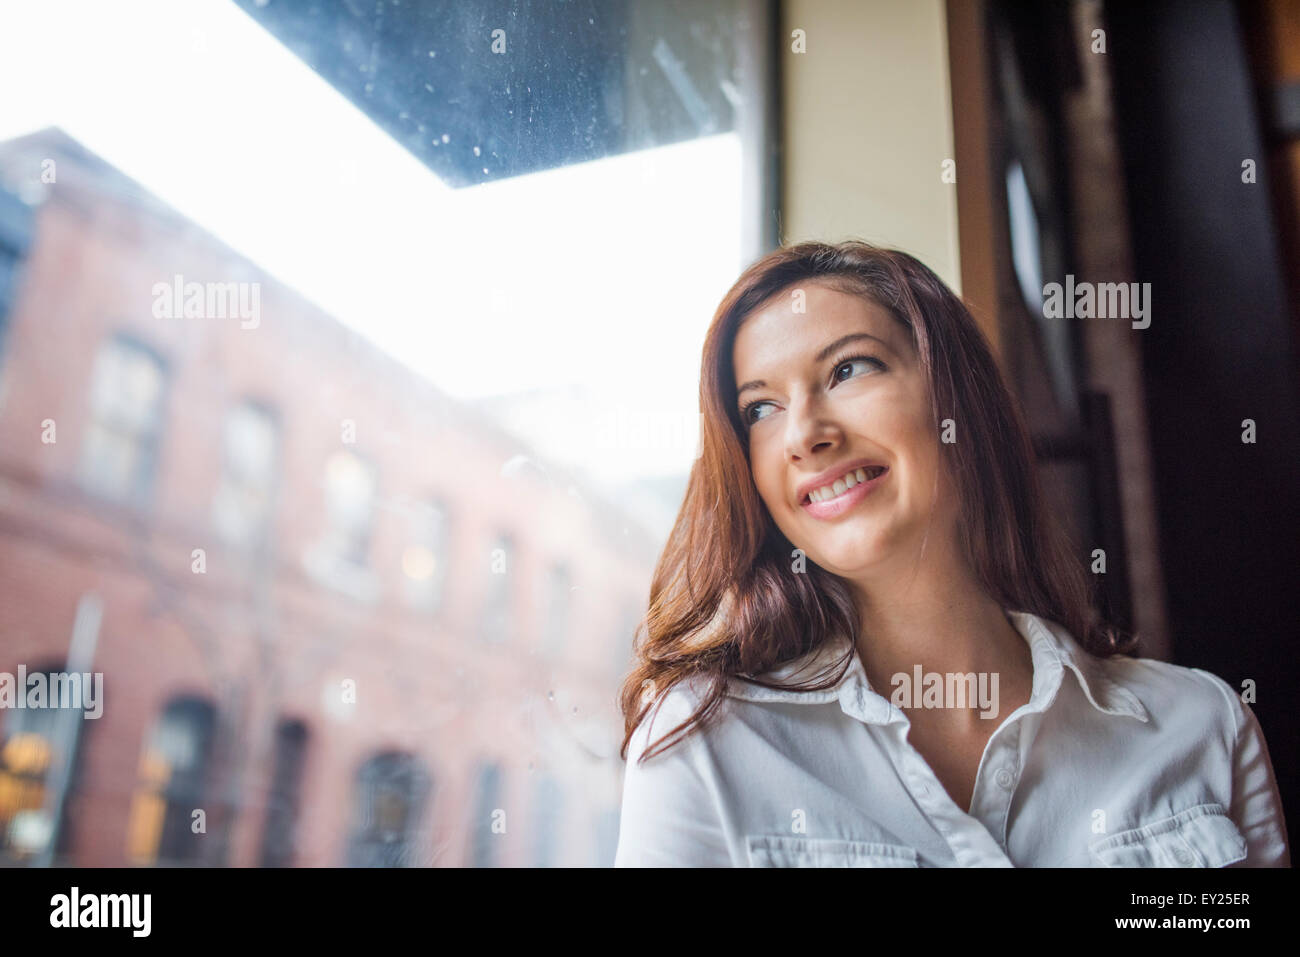 Portrait of young woman with long dark hair, smiling, low angle view - Stock Image